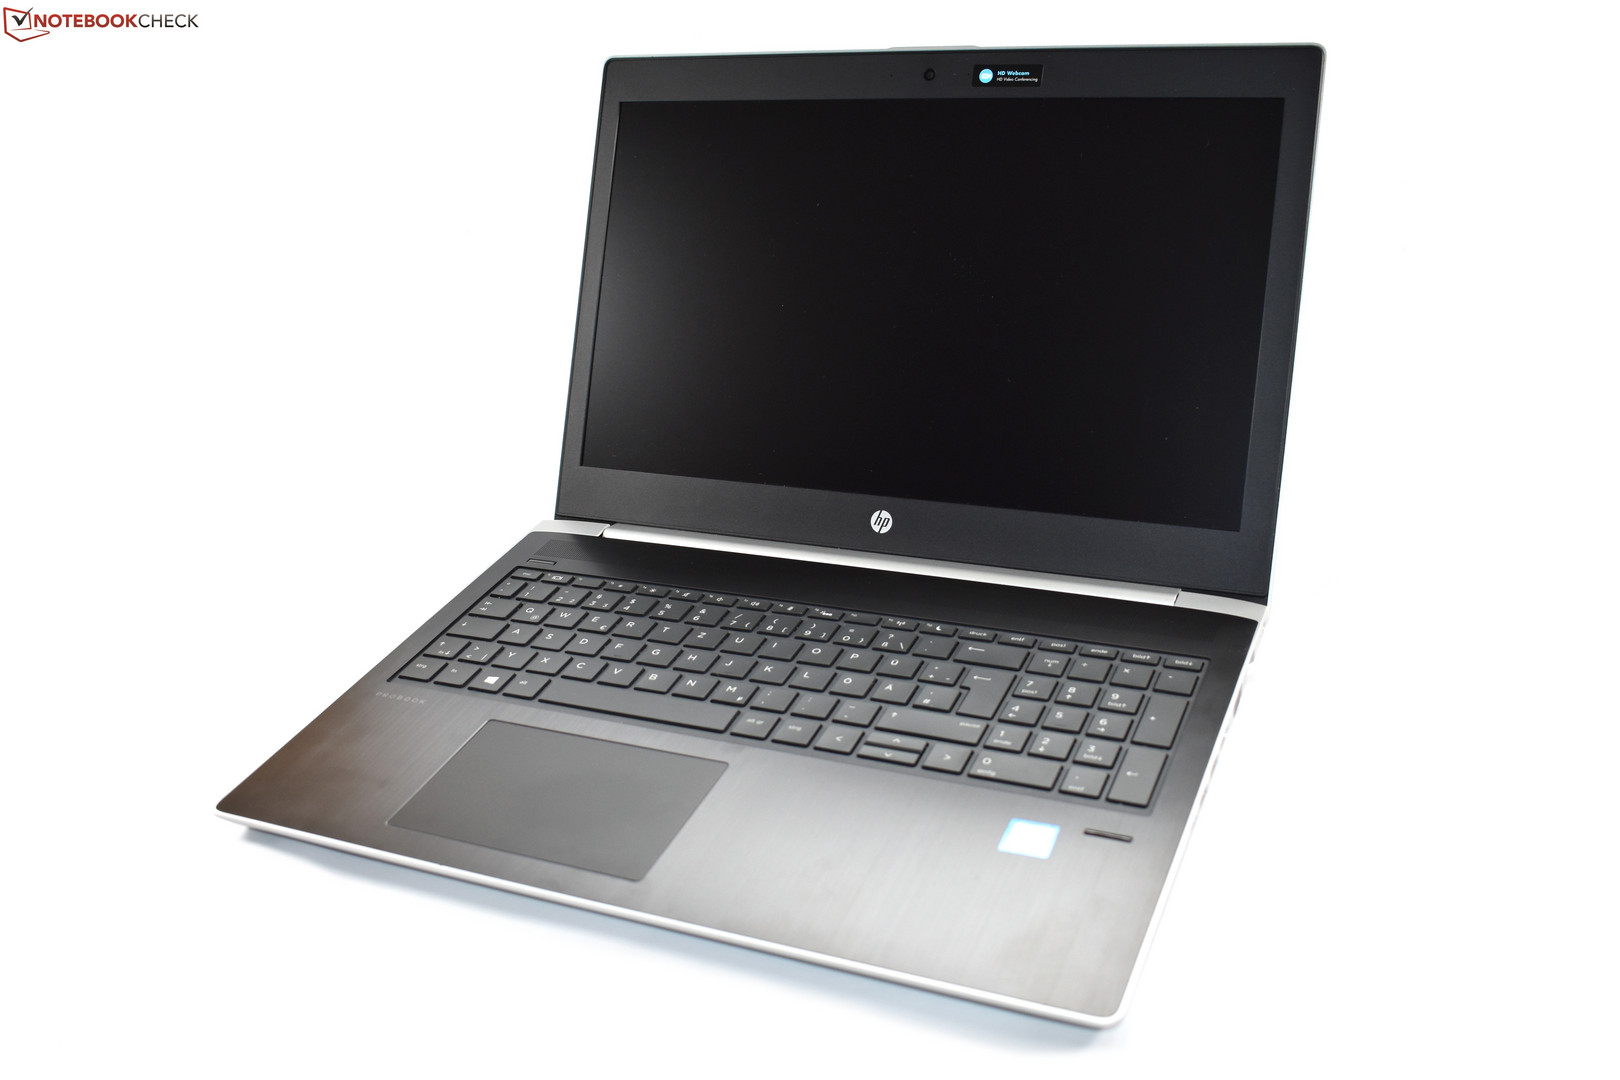 hp pavilion g4 wifi drivers for windows 7 free download